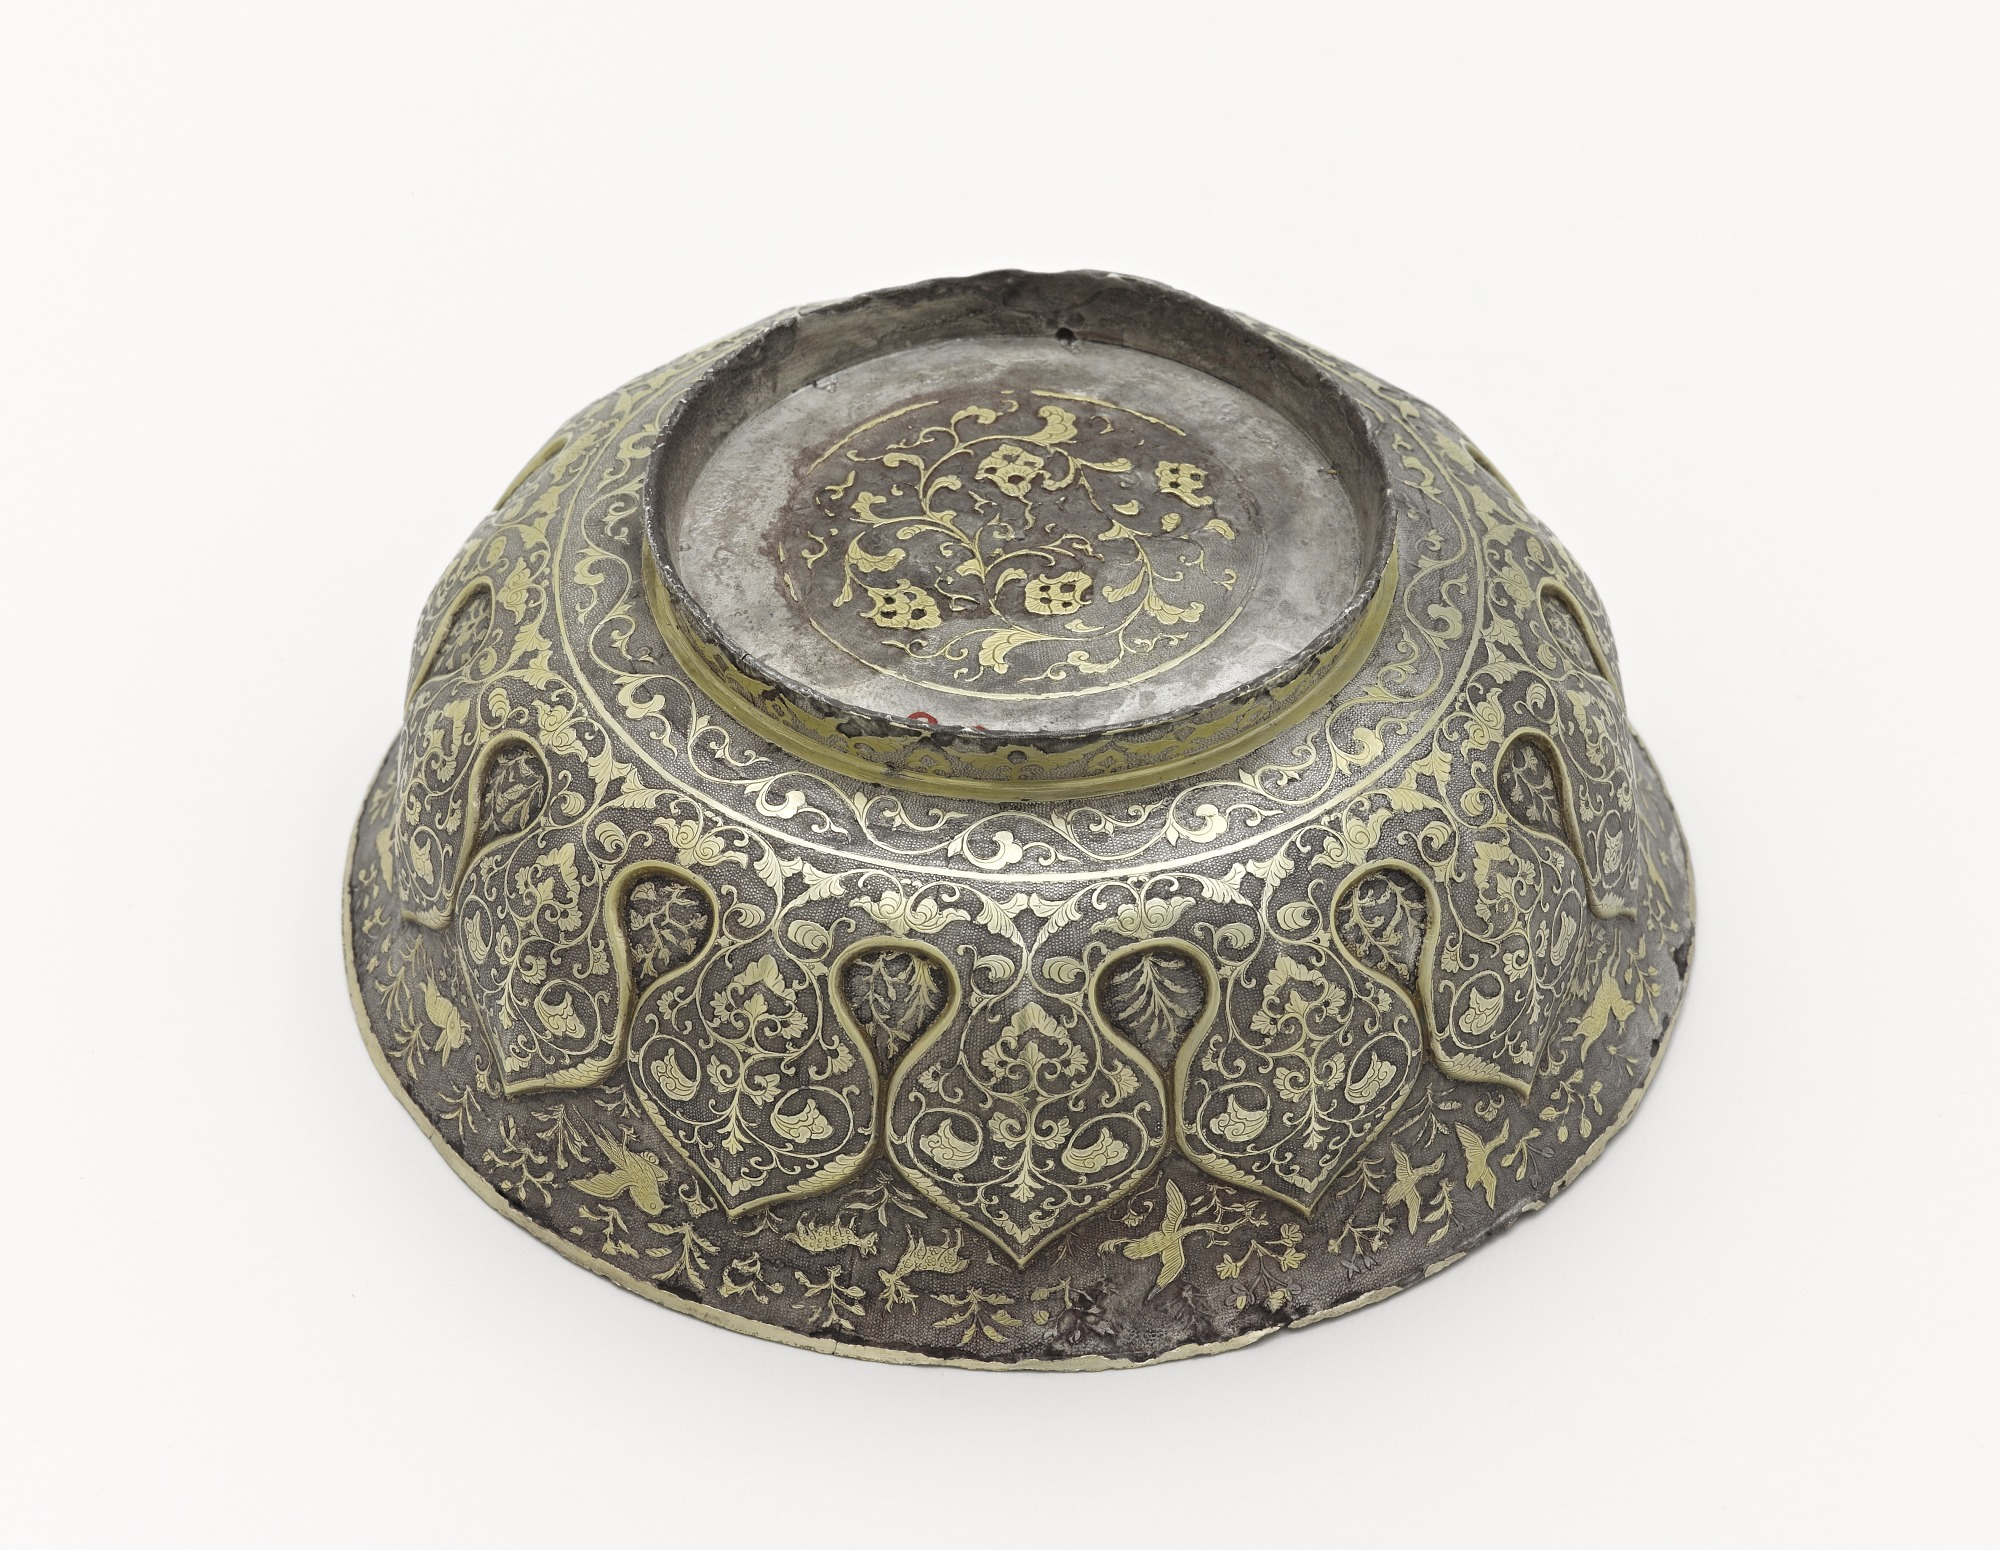 Lobed bowl with lotus petals, birds, animals, and floral scrolls